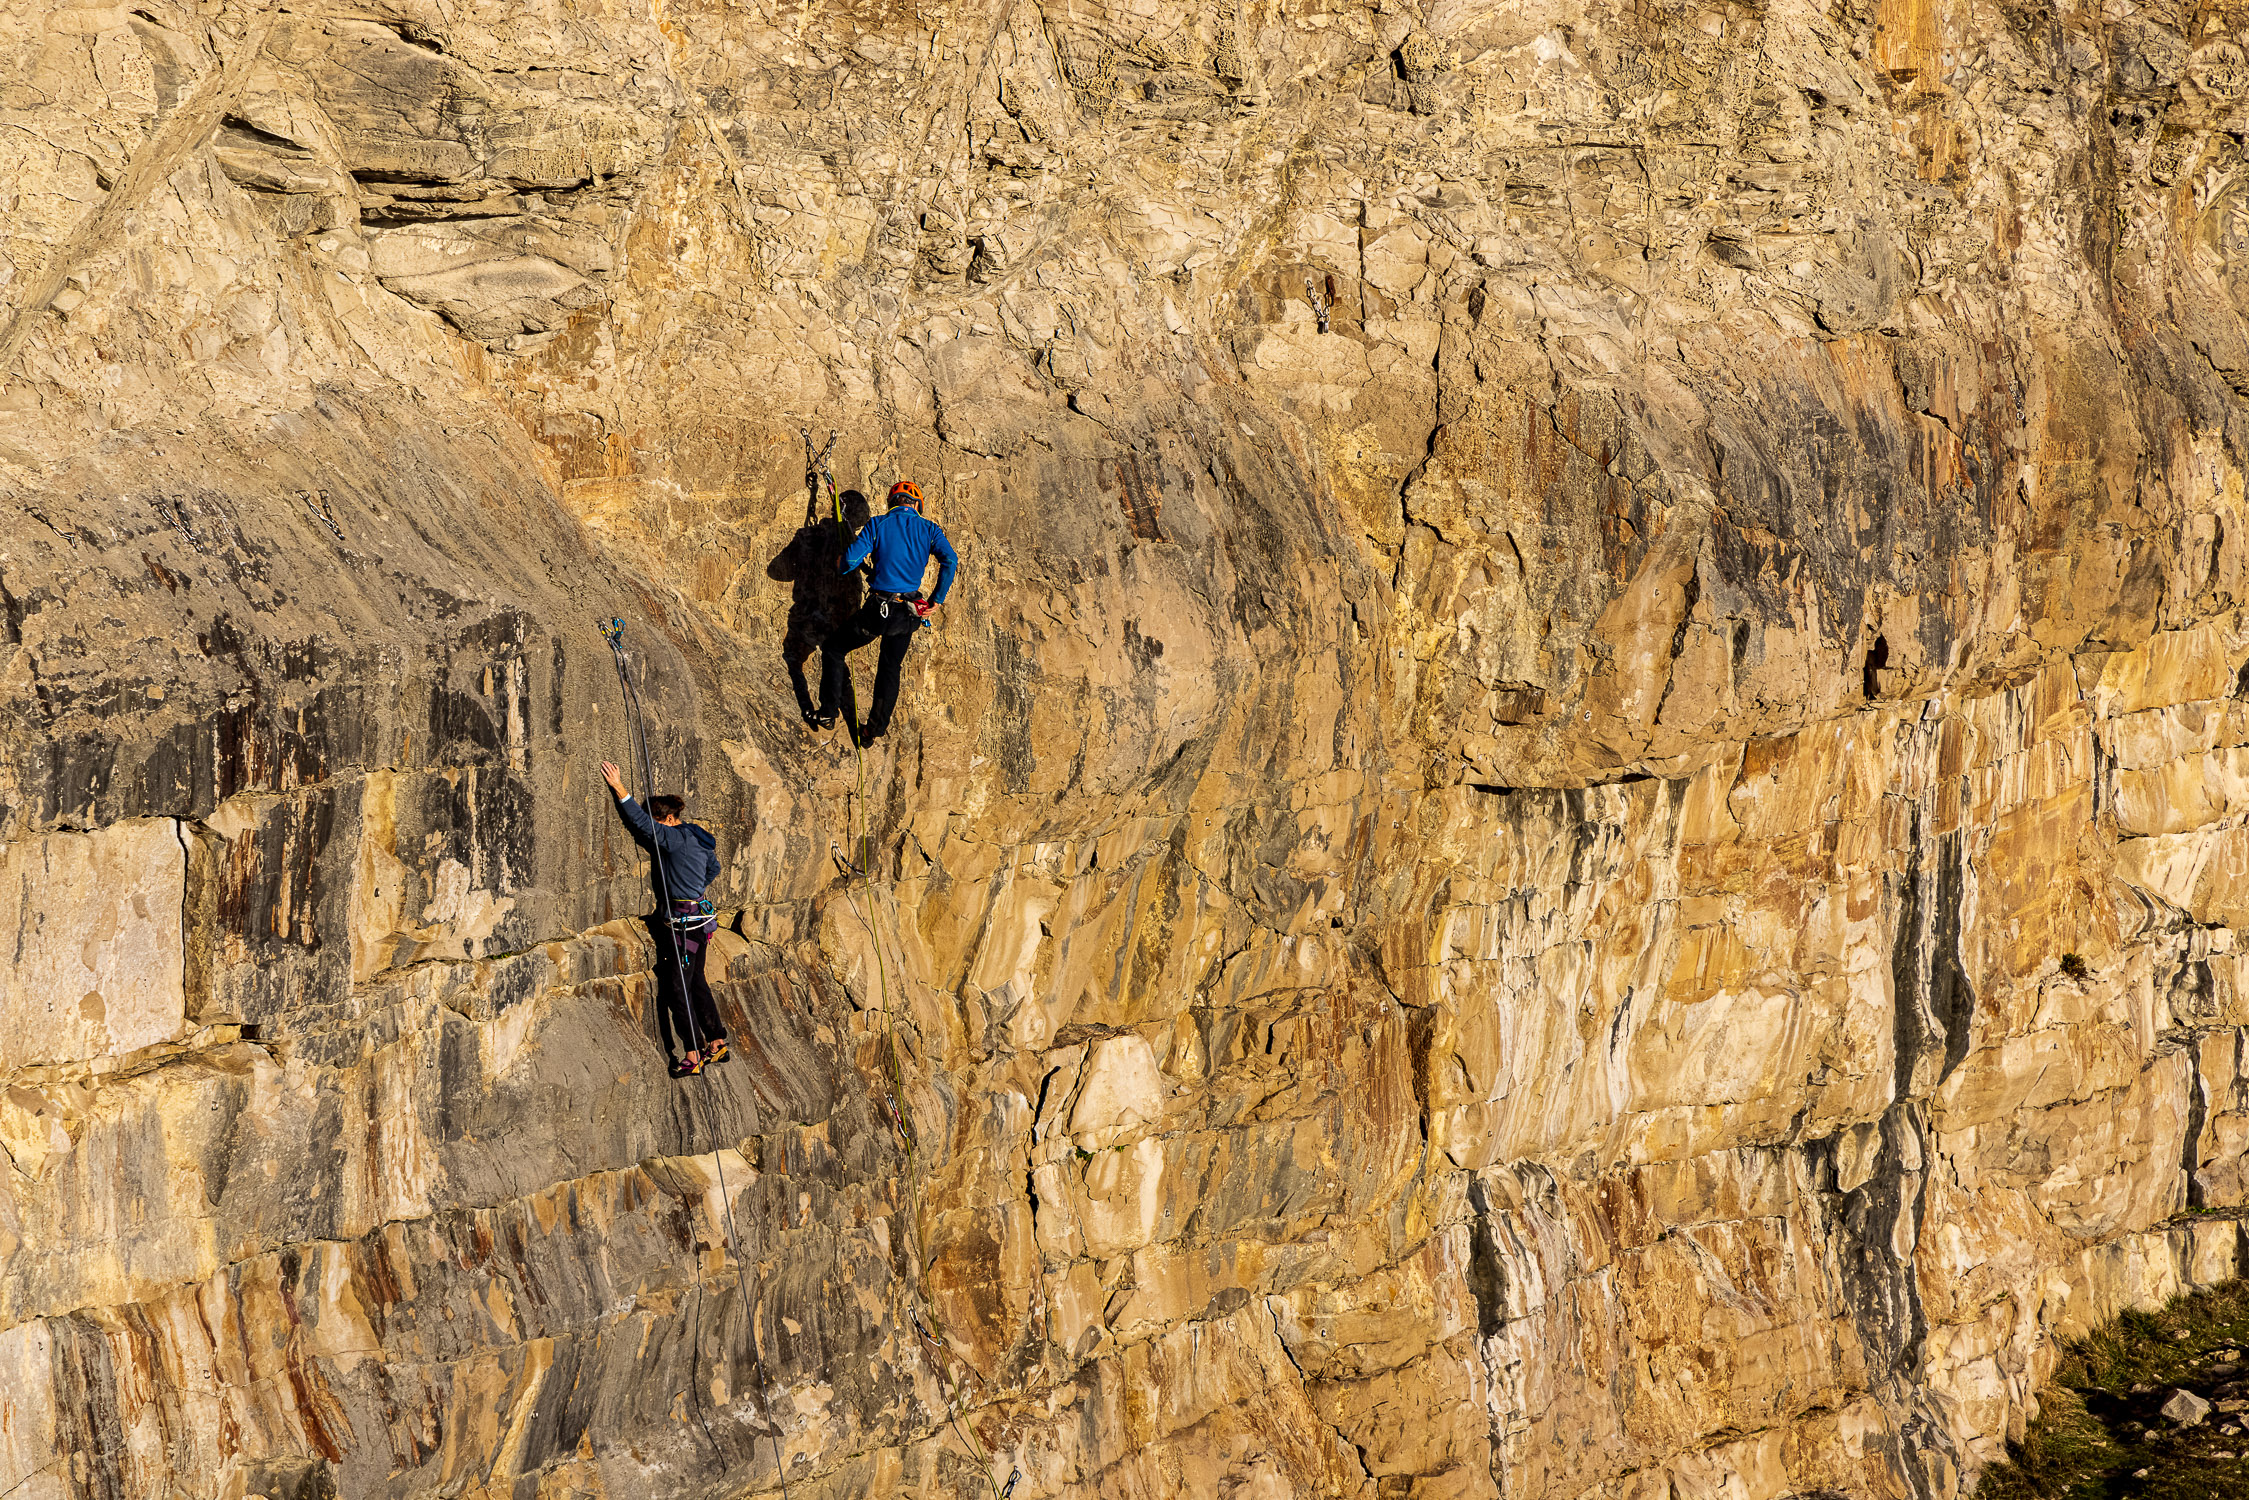 Rock climbers on the cliffs at Dancing Ledge, Purbeck